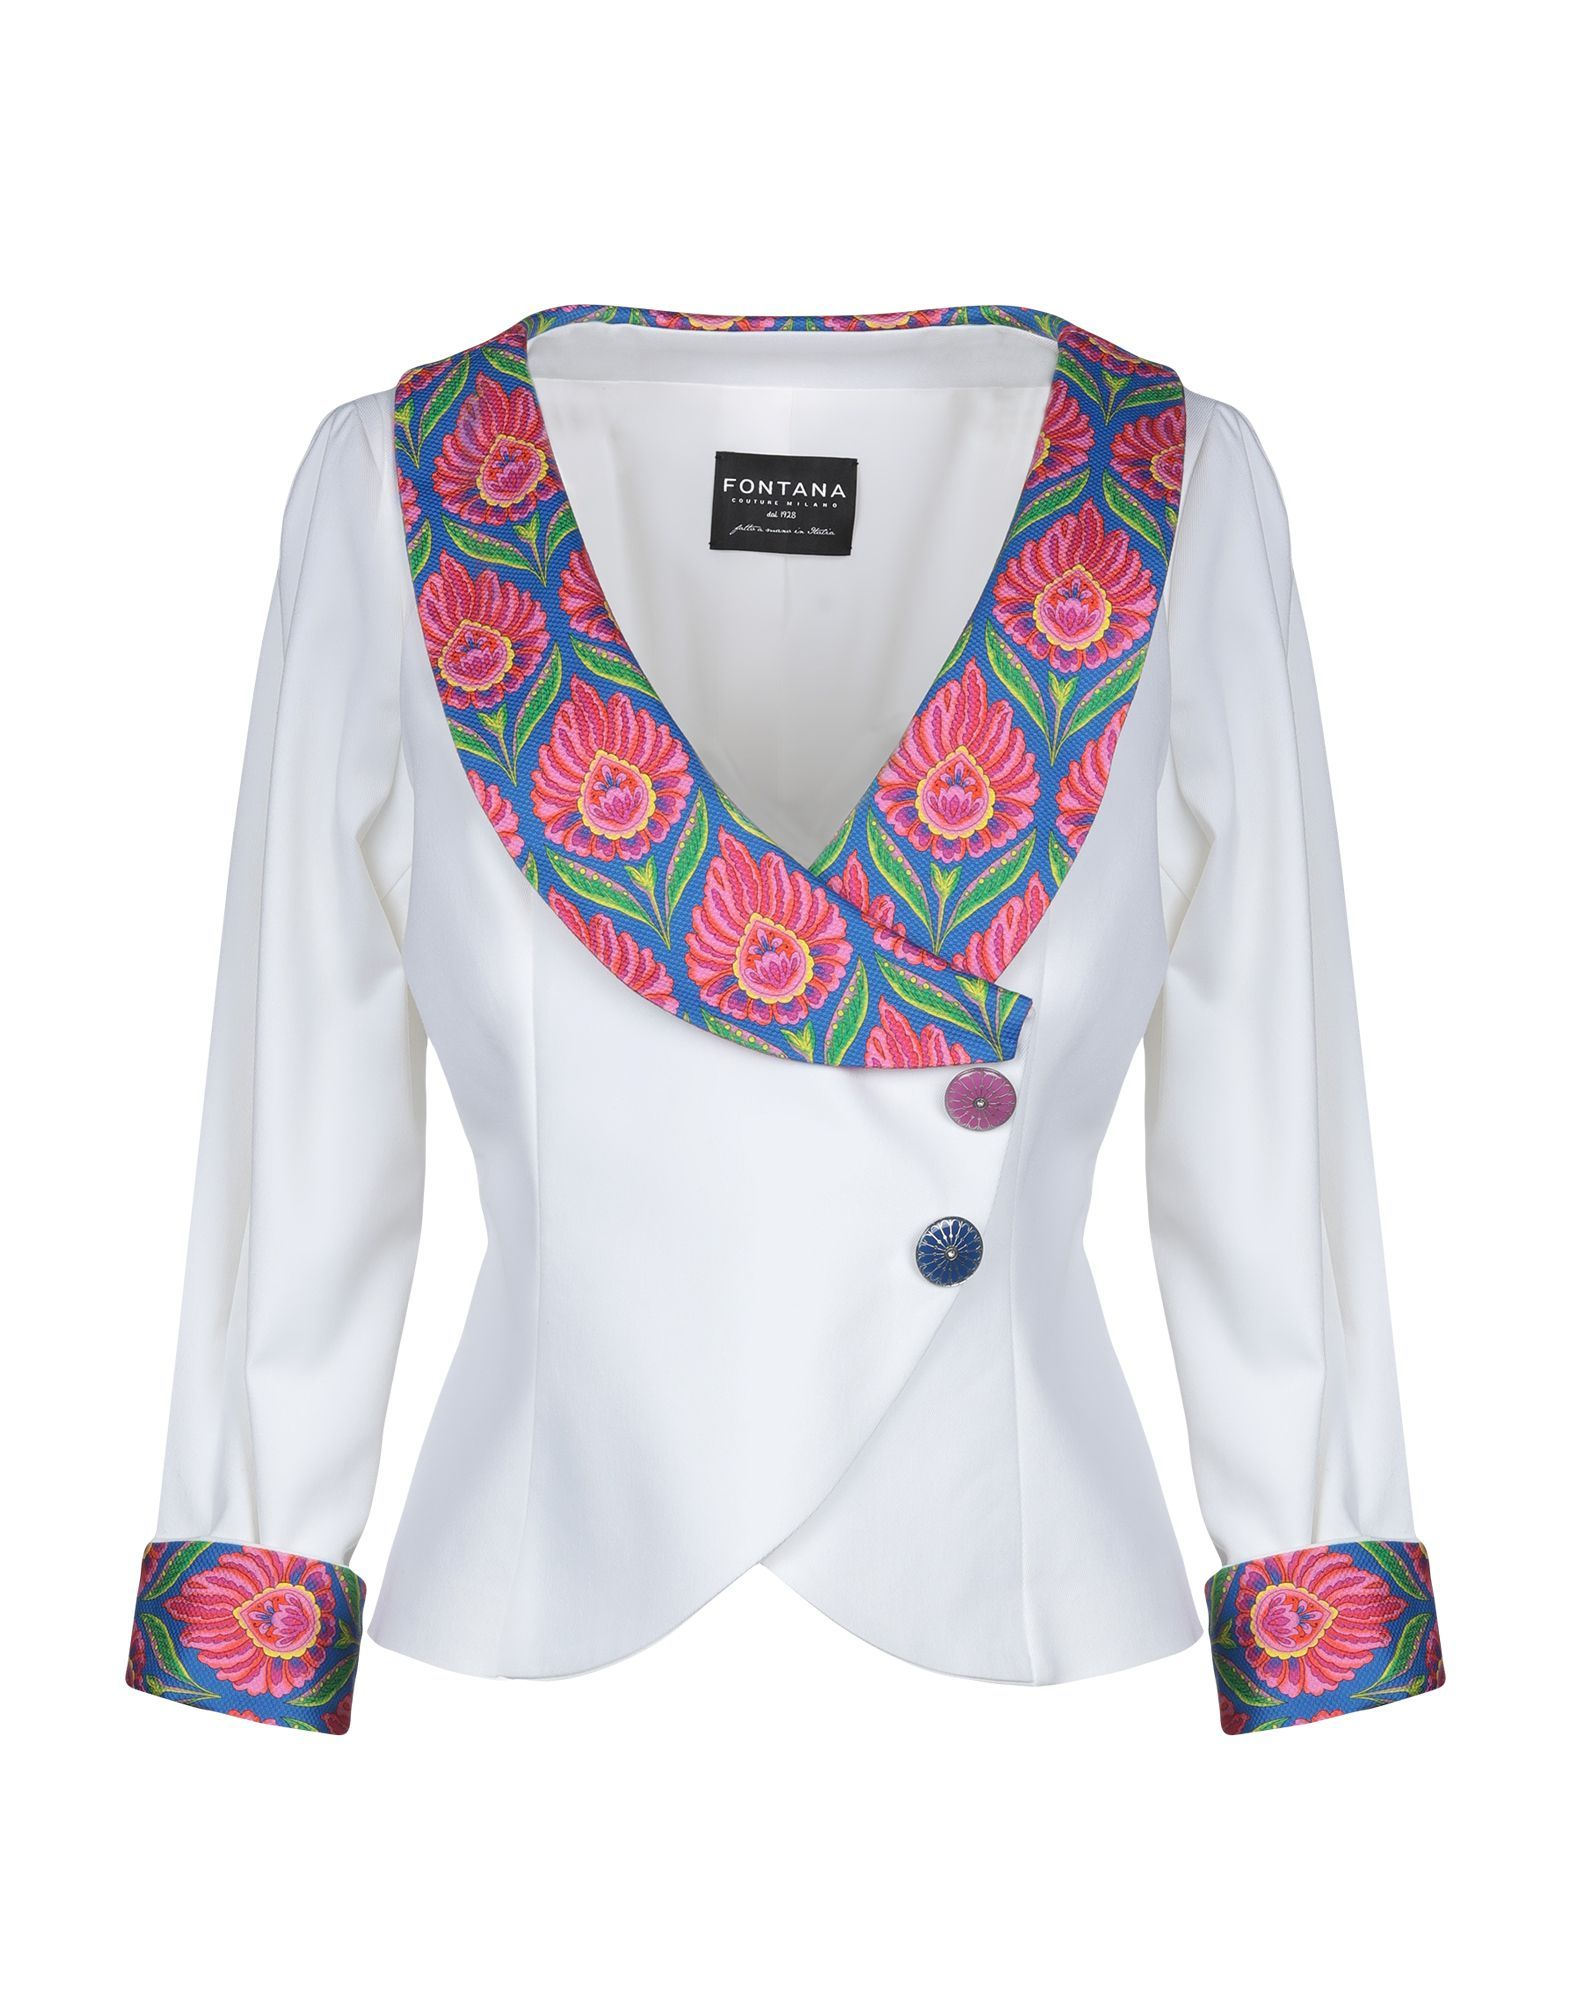 SUITS AND JACKETS Woman Fontana Couture White Paper